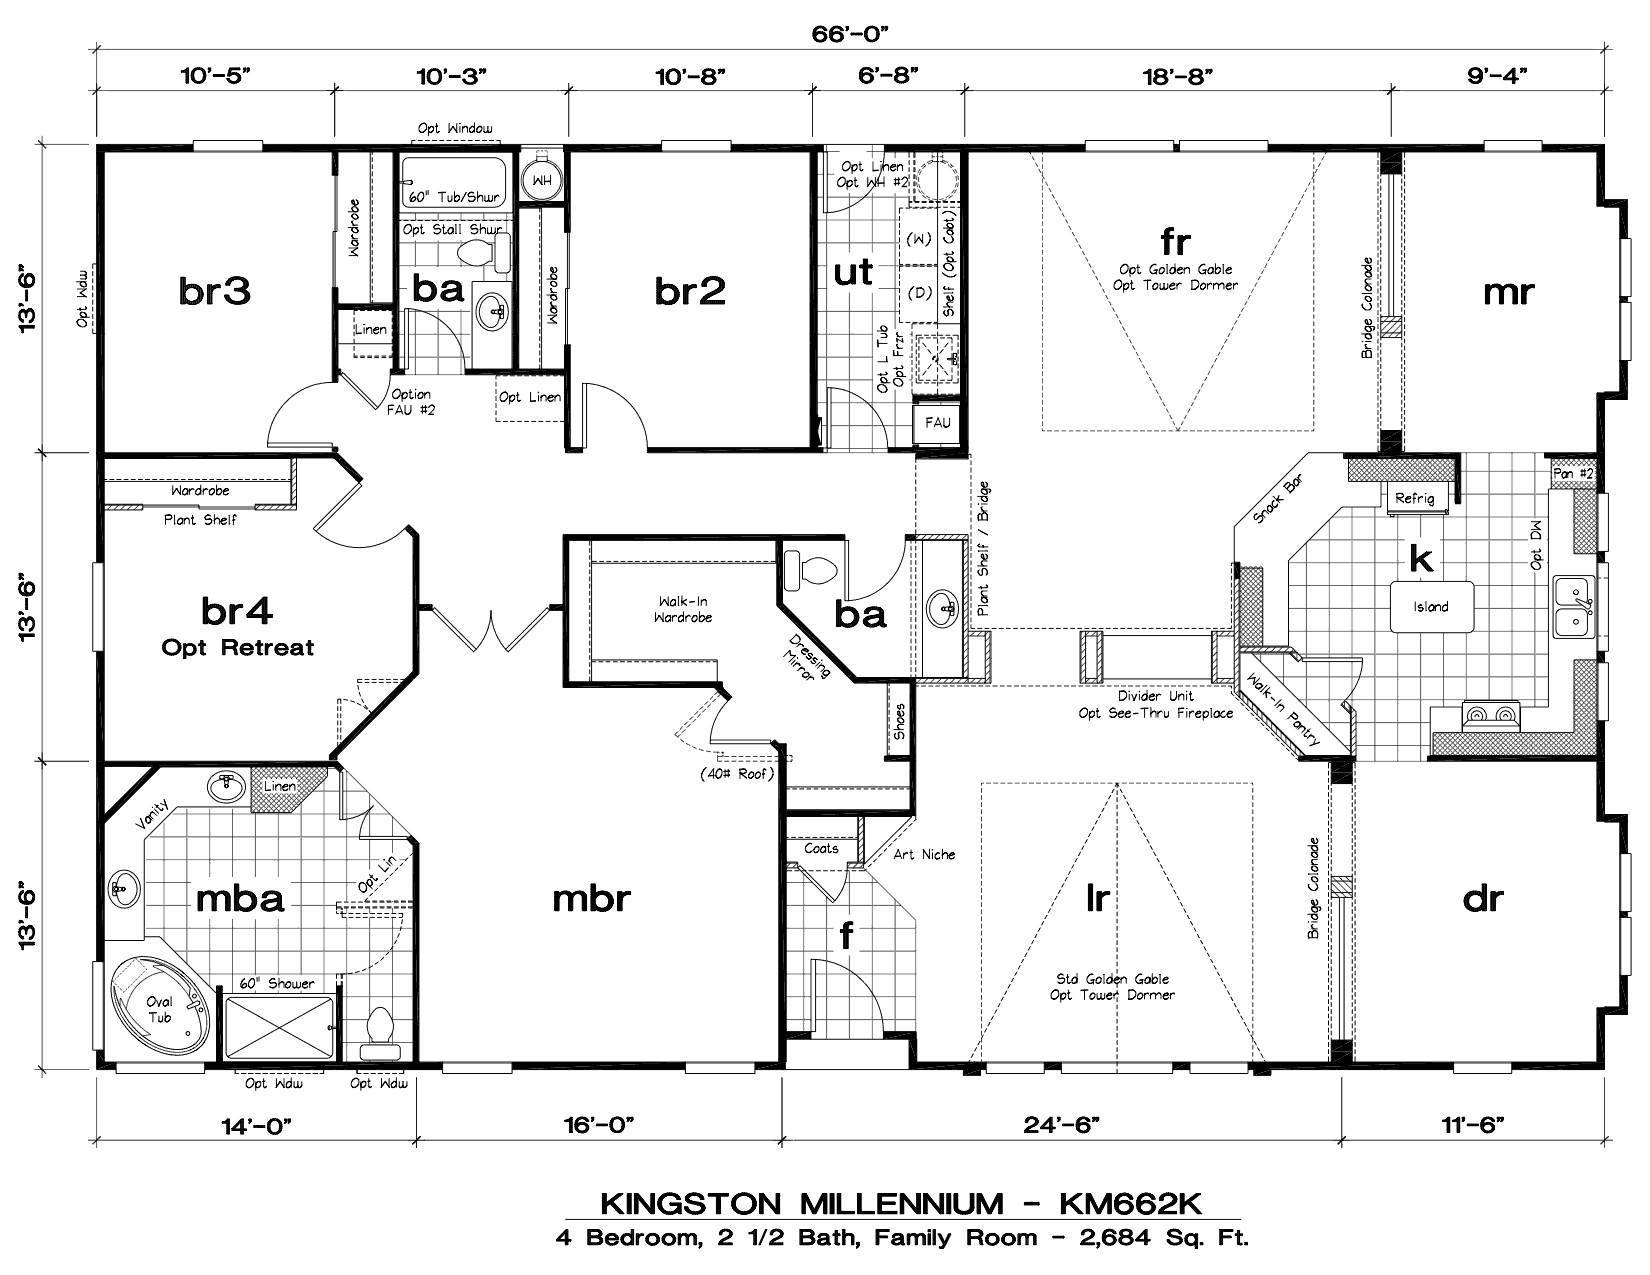 modular home floor plans florida best of manufactured homes marlette floor plans home triple wide the la